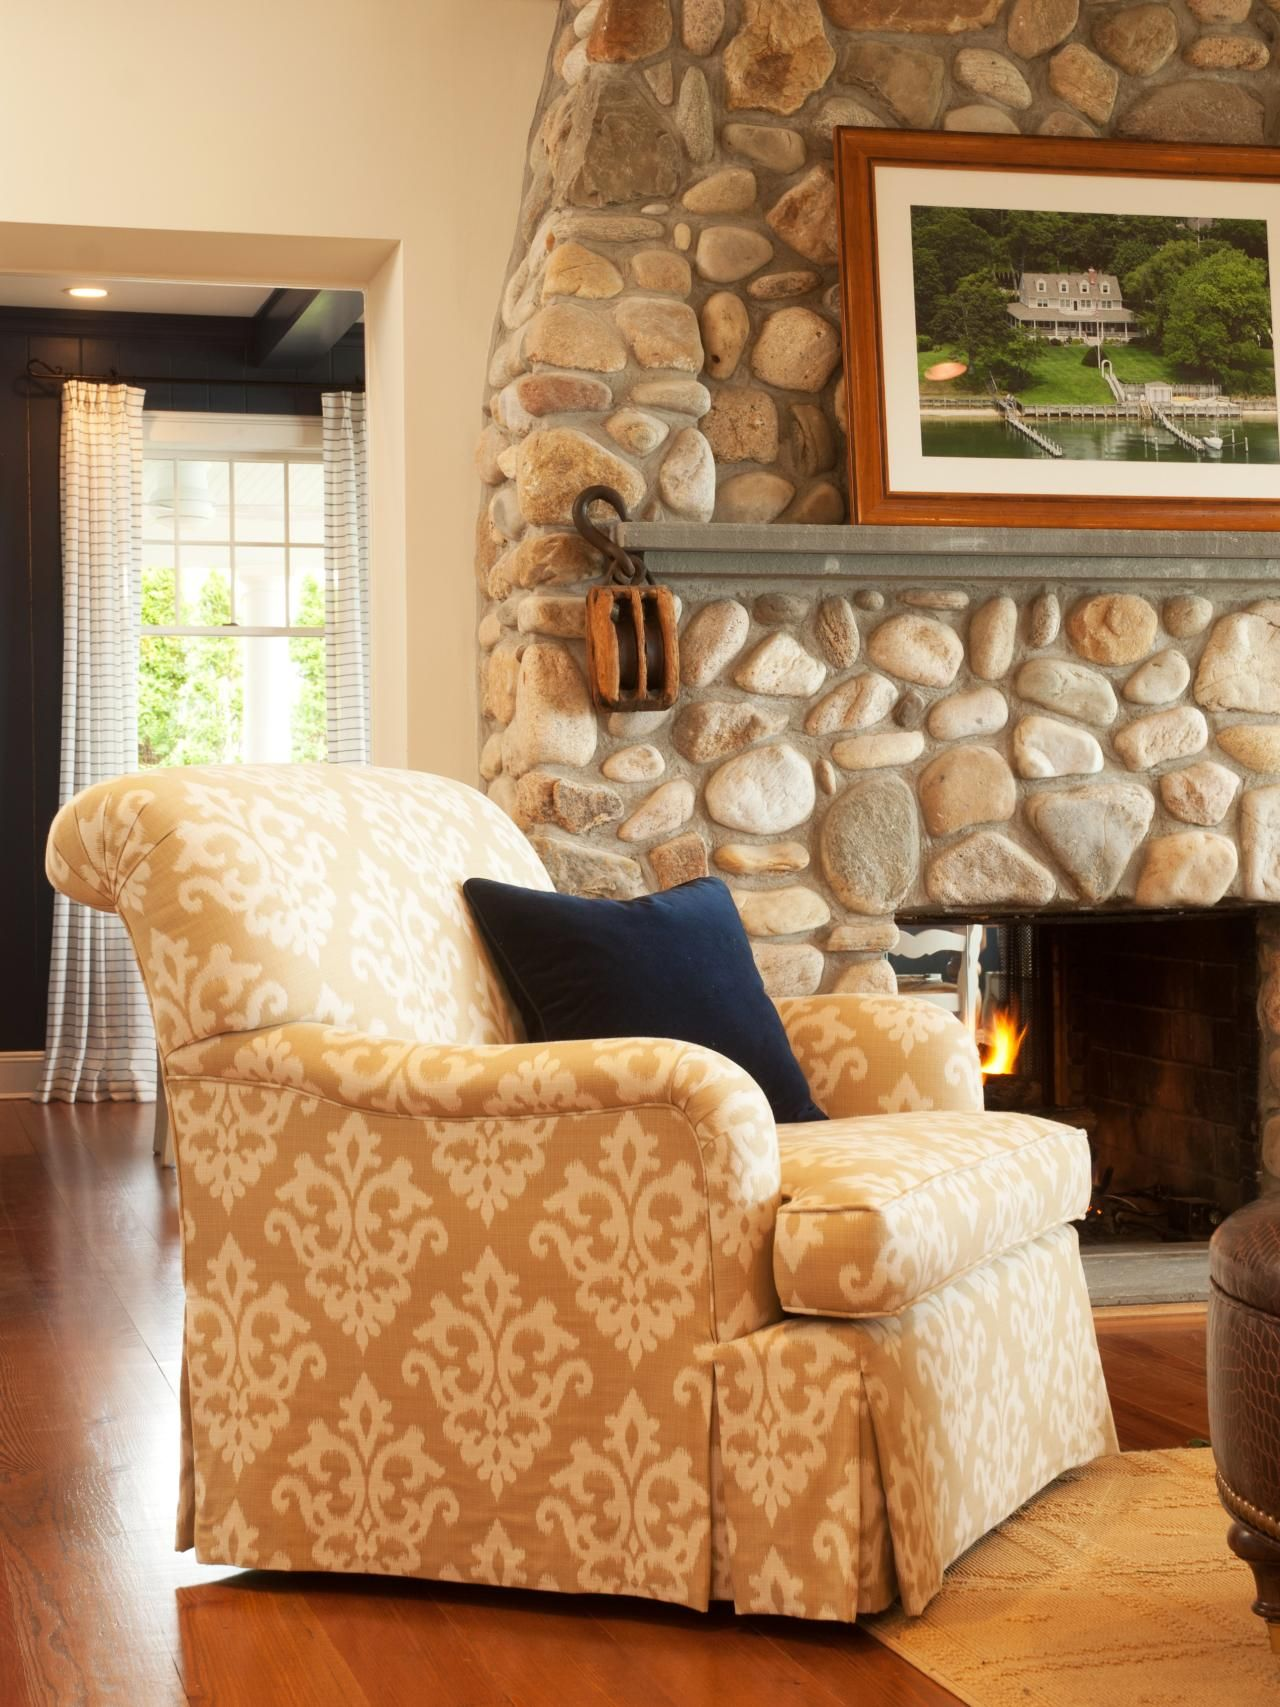 A natural stone fireplace and patterned tan patterned armchair set